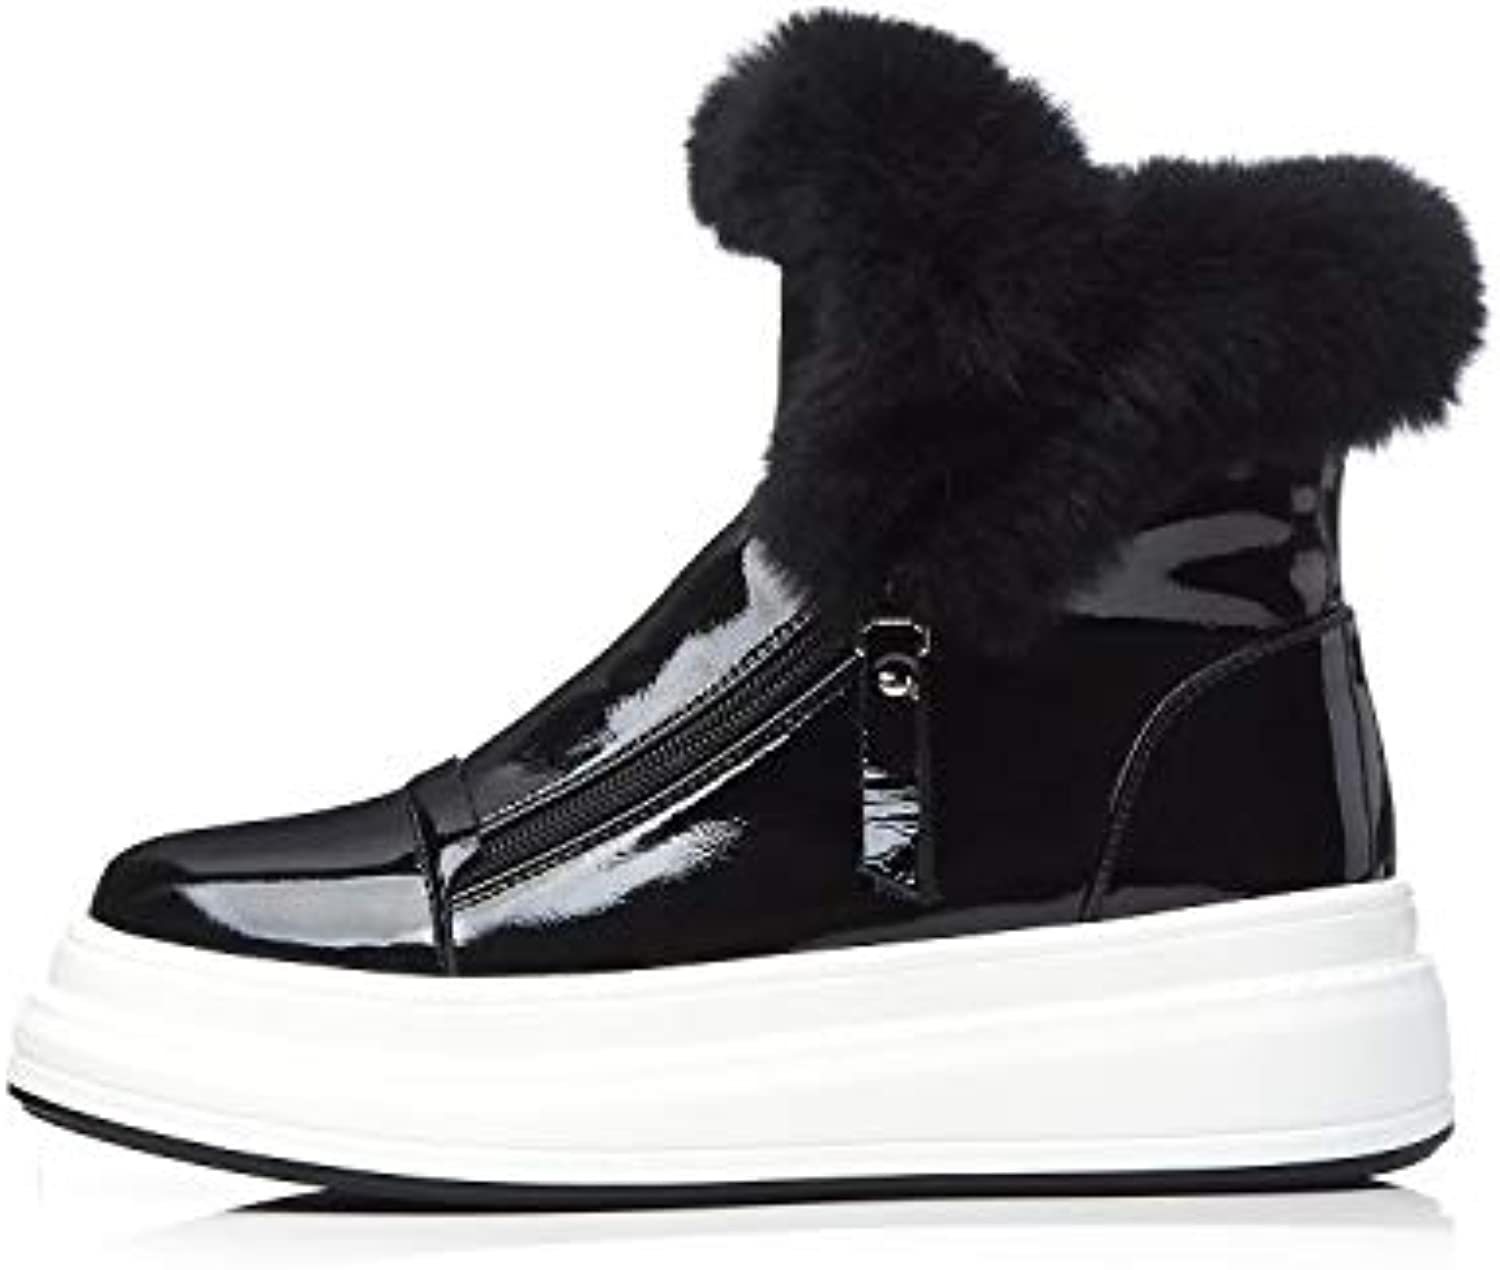 Women's Boots Leather Winter top Casual shoes Snow shoes Platform shoes Round Head Warm Thick Boots Black White (color   Black, Size   38)